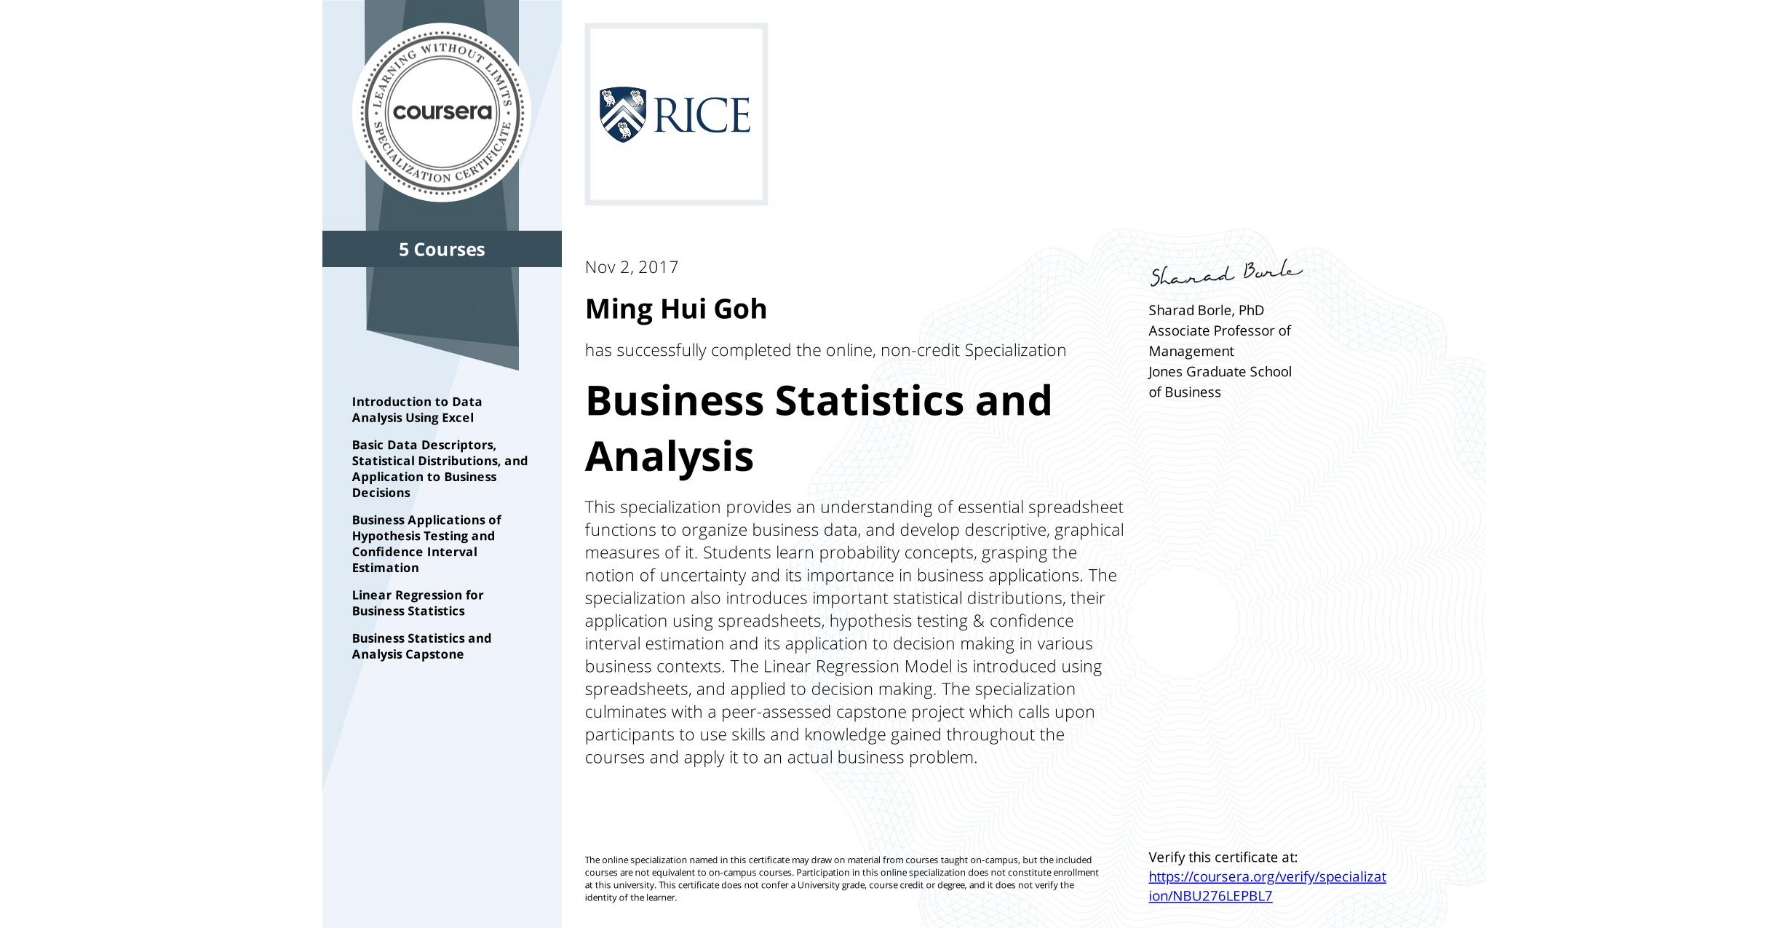 View certificate for Ming Hui  Goh, Business Statistics and Analysis, offered through Coursera. This specialization provides an understanding of essential spreadsheet functions to organize business data, and develop descriptive, graphical measures of it. Students learn probability concepts, grasping the notion of uncertainty and its importance in business applications. The specialization also introduces important statistical distributions, their application using spreadsheets, hypothesis testing & confidence interval estimation and its application to decision making in various business contexts. The Linear Regression Model is introduced using spreadsheets, and applied to decision making. The specialization culminates with a peer-assessed capstone project which calls upon participants to use skills and knowledge gained throughout the courses and apply it to an actual business problem.